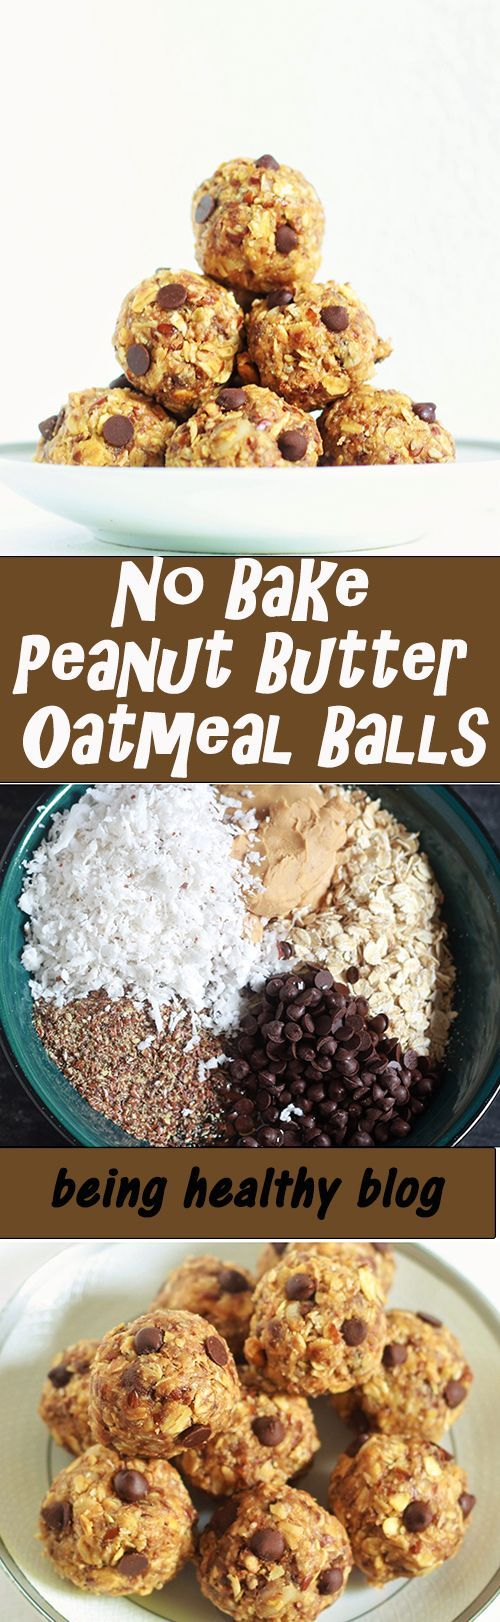 No Bake Peanut Butter Oatmeal Balls – Learn how to make Peanut Butter Oatmeal Balls without baking.